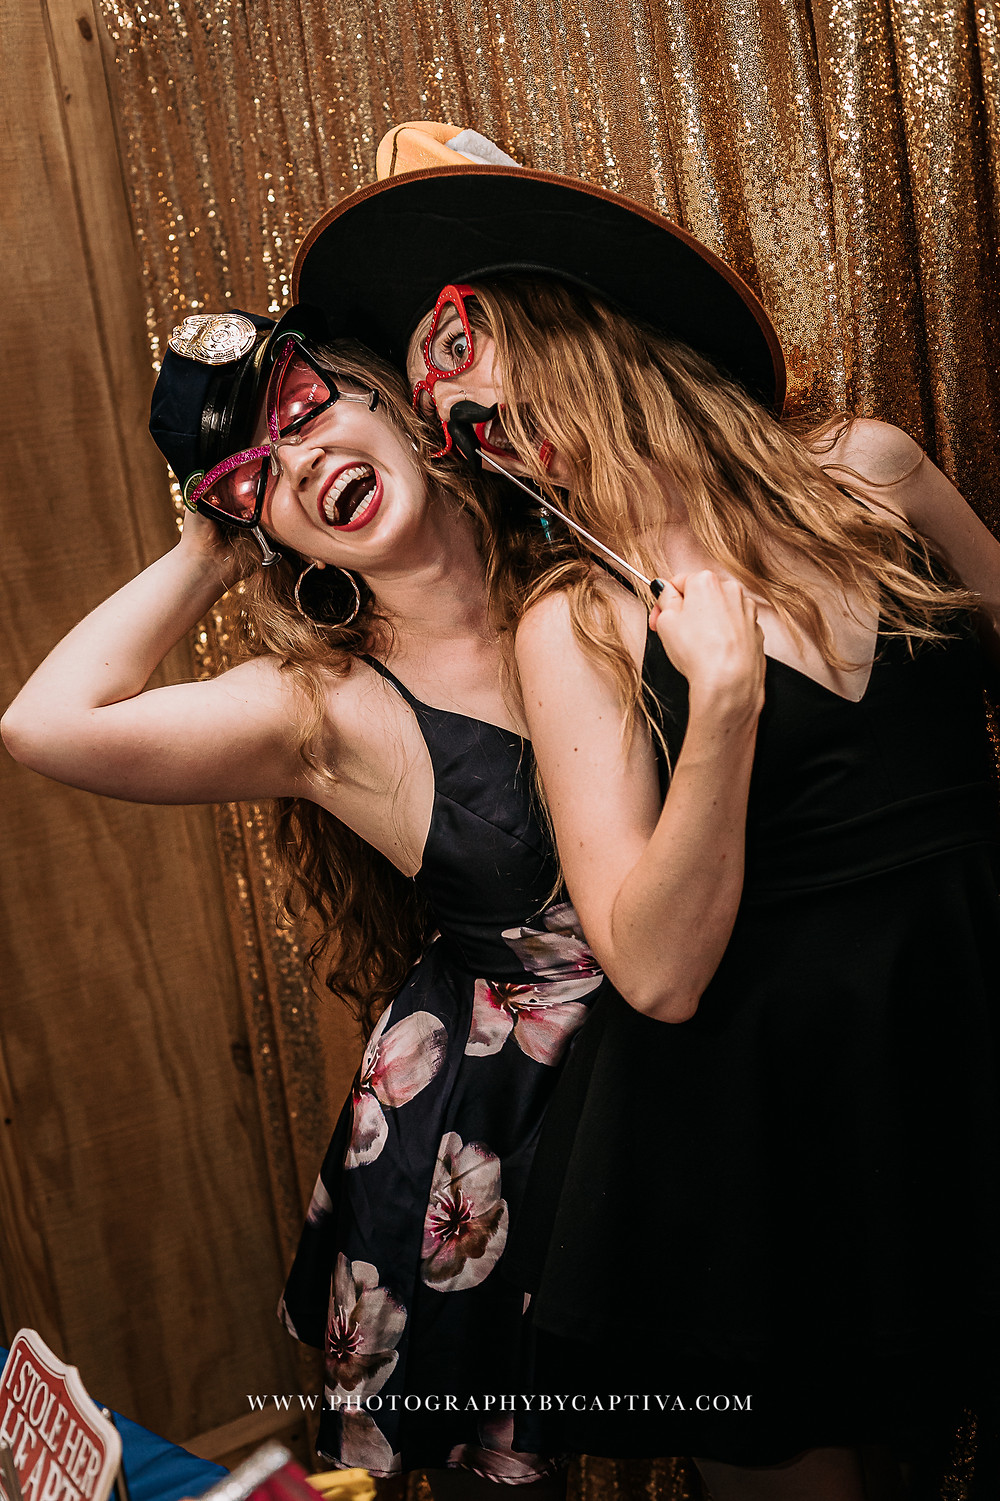 2 women with silly hats and glasses